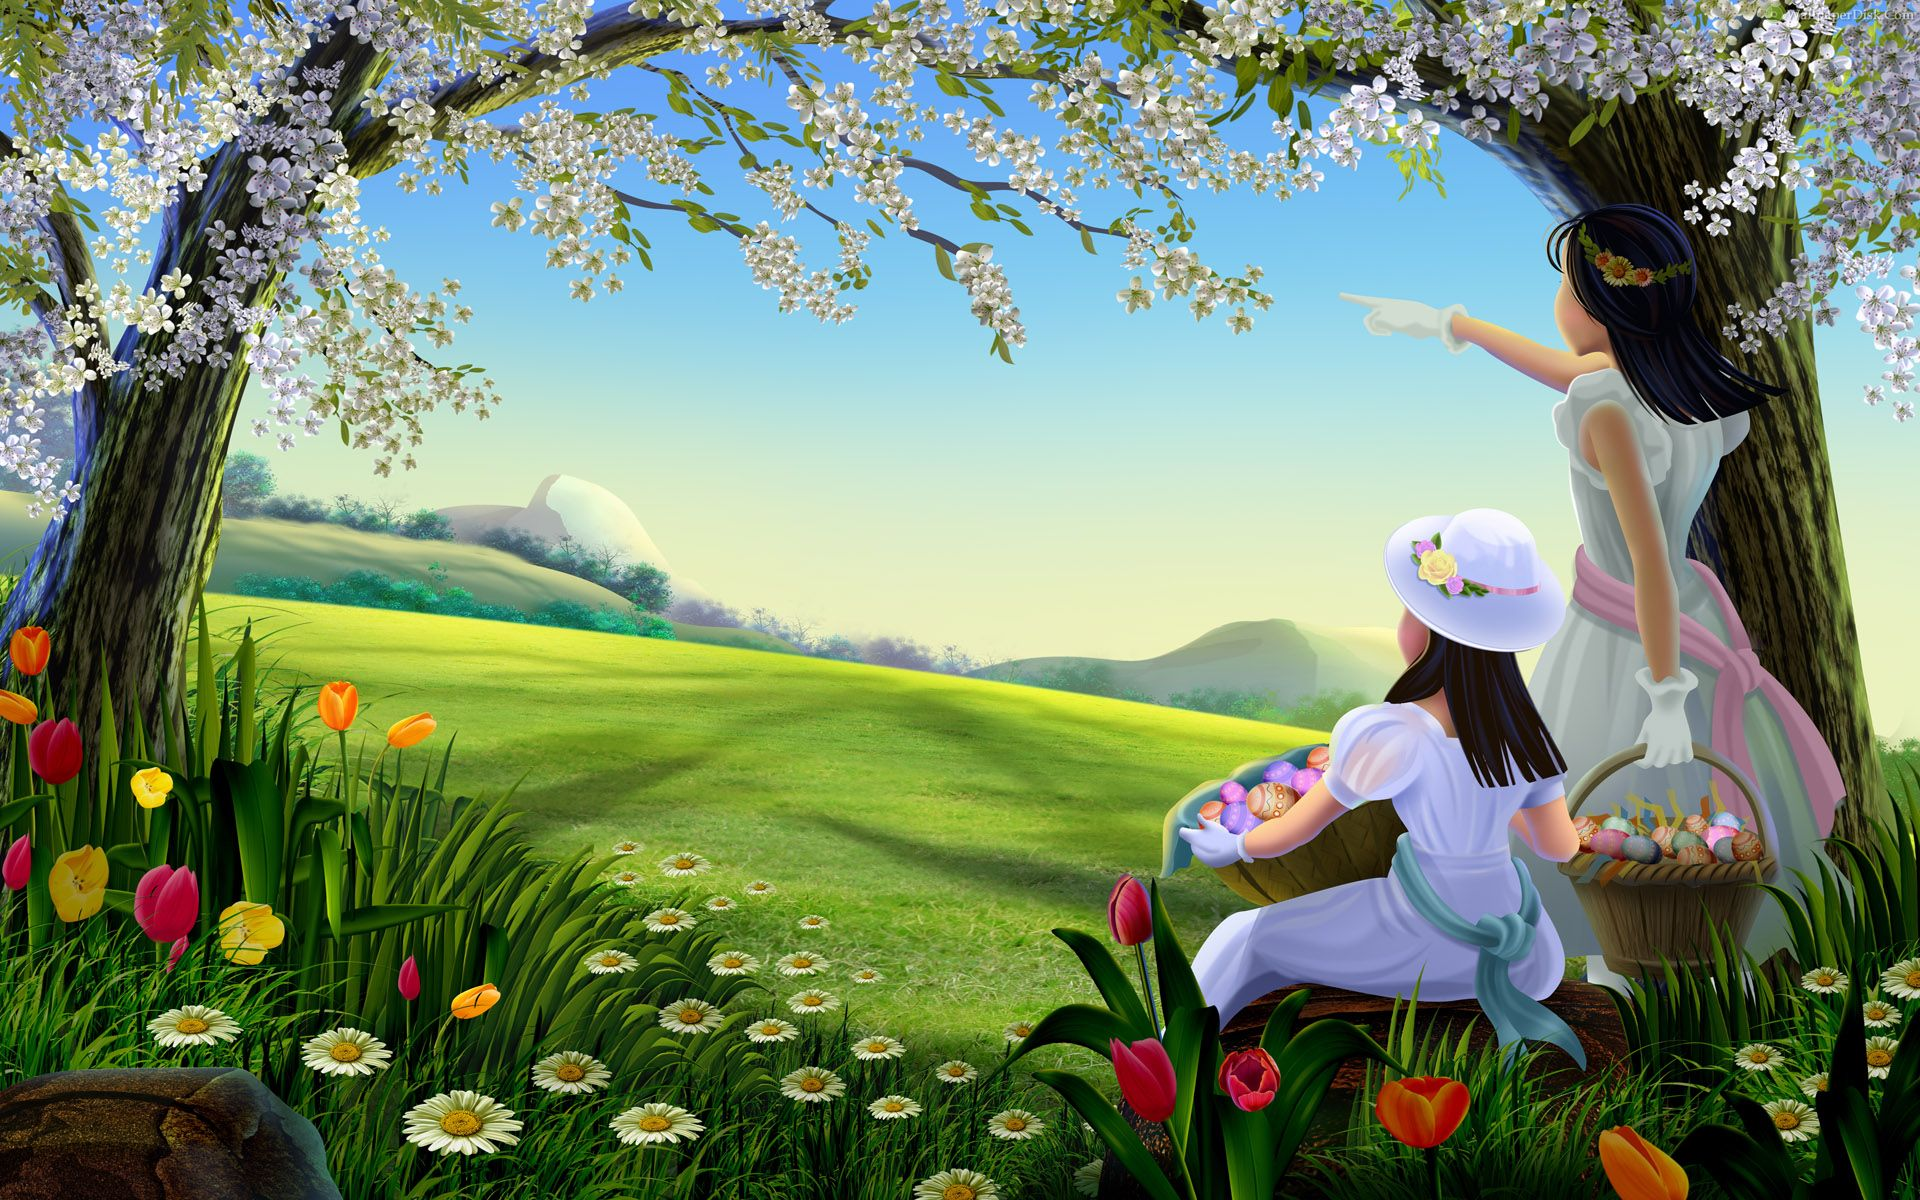 Spring Season Wallpaper One HD Wallpaper Pictures Backgrounds